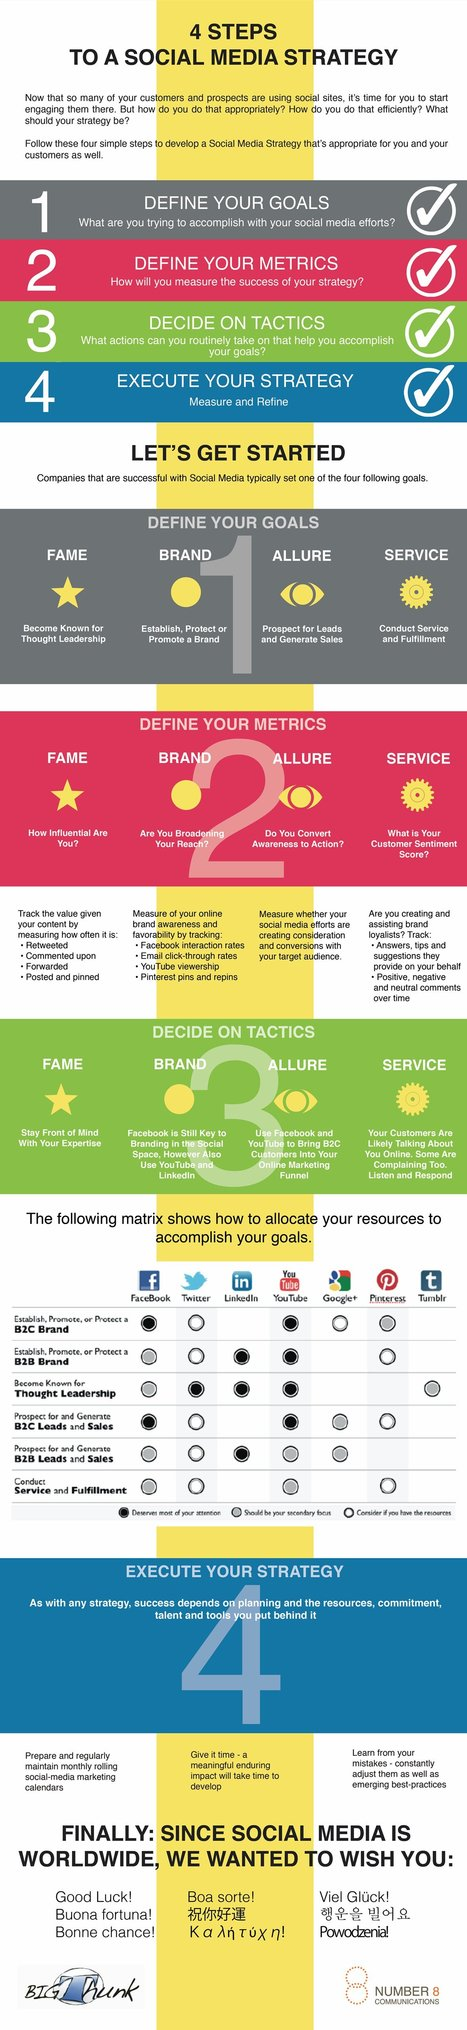 Infographic: The 4 Steps to Social Media Marketing | social media infographics and typography | Scoop.it